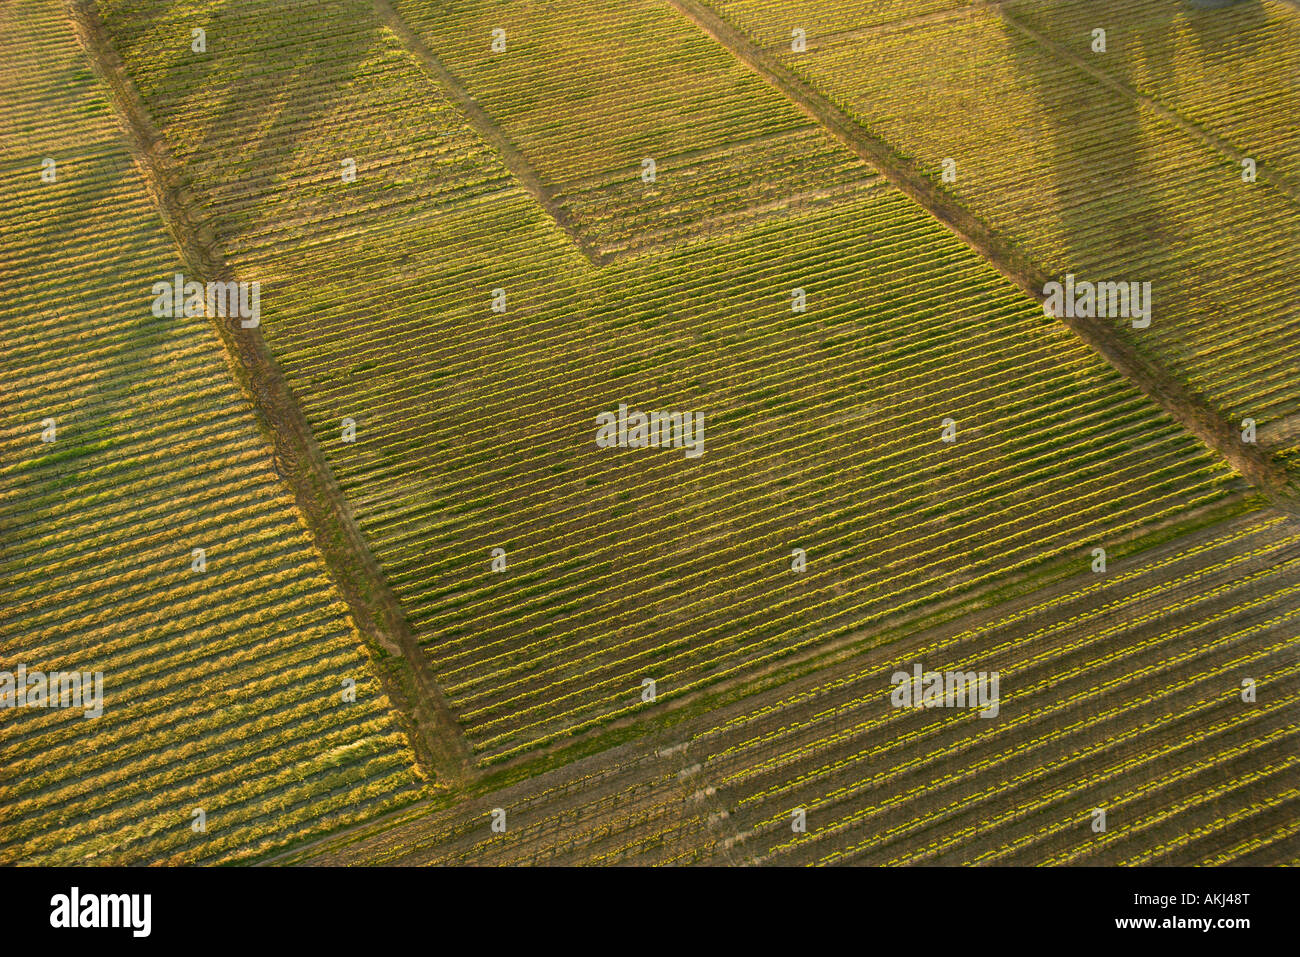 Aerial of agricultural cropland - Stock Image